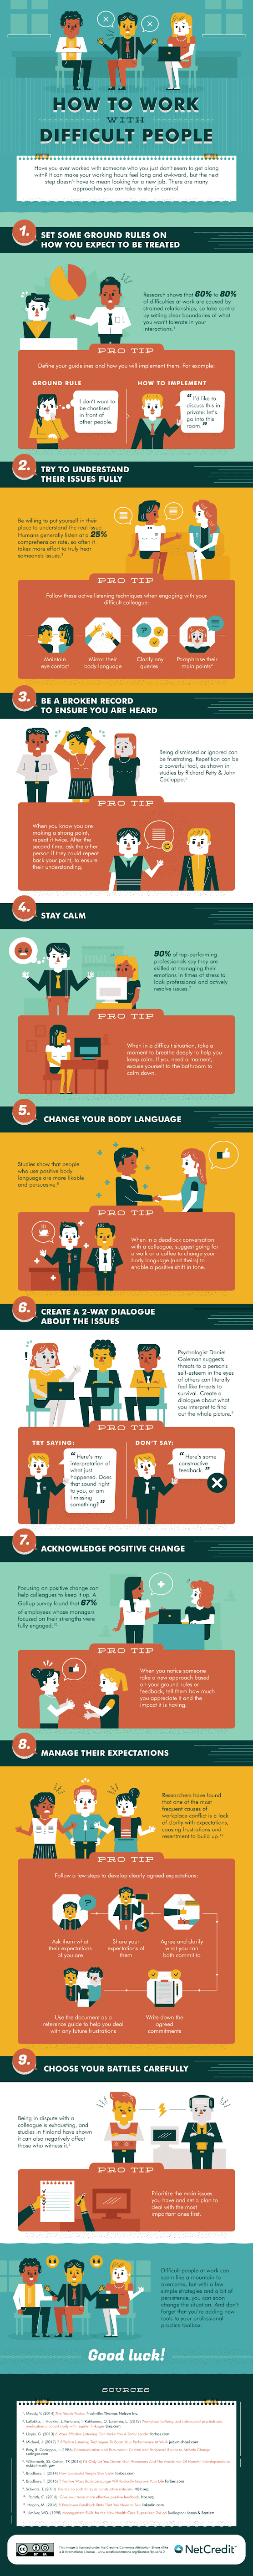 How to Work With Difficult People #infographic